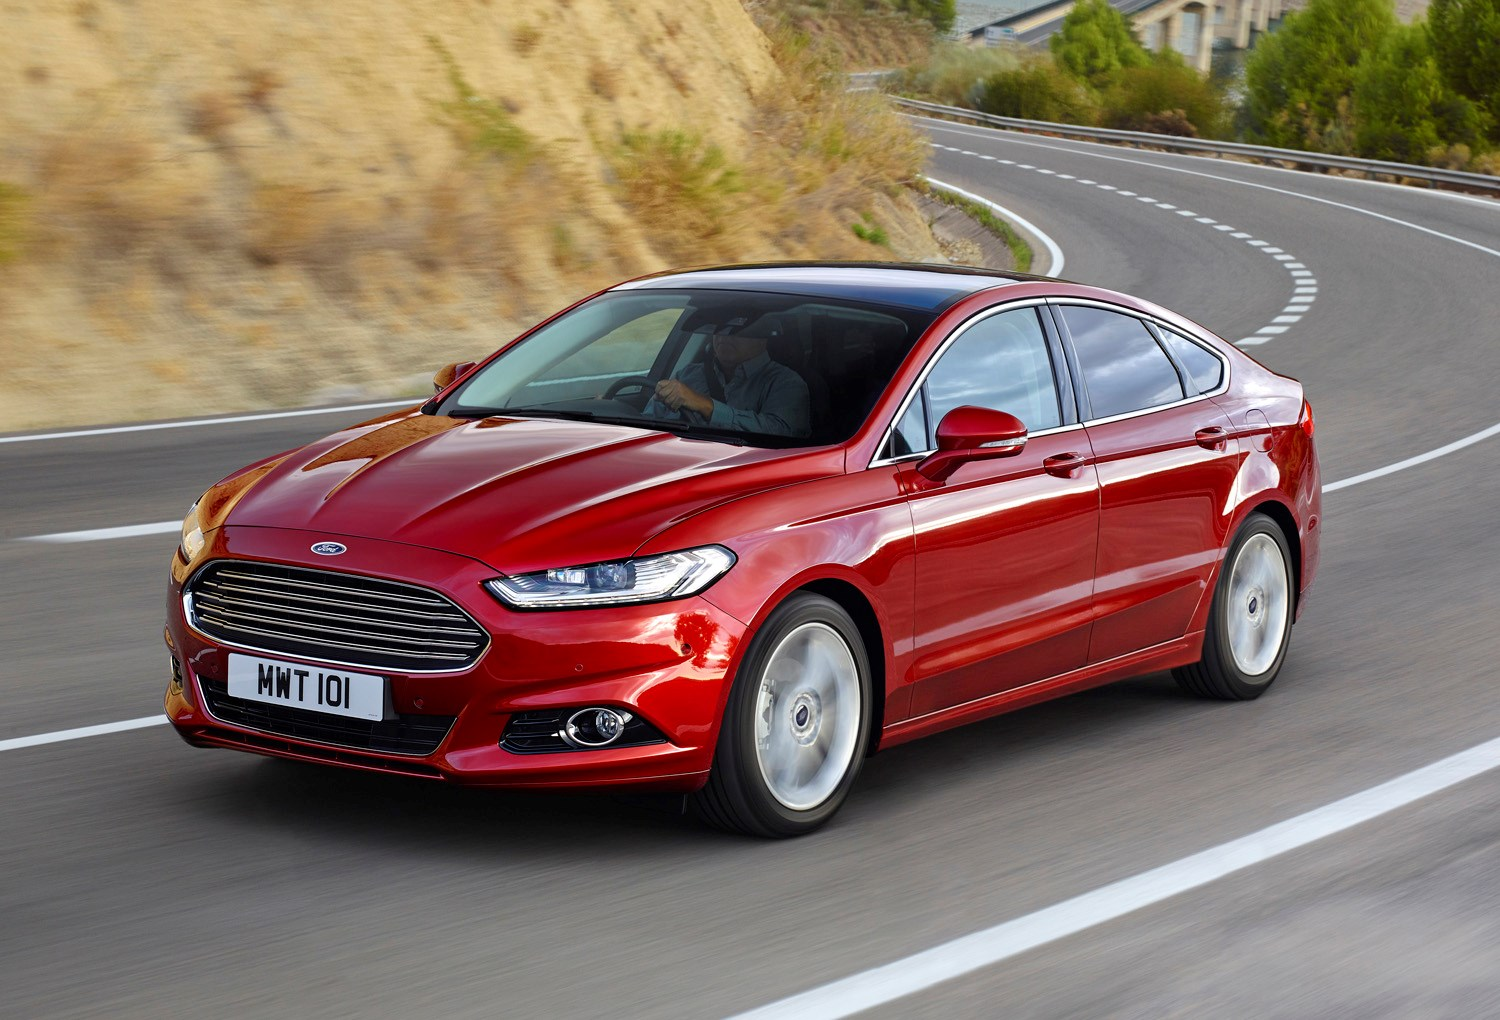 Ford Mondeo Hatchback Review Parkers